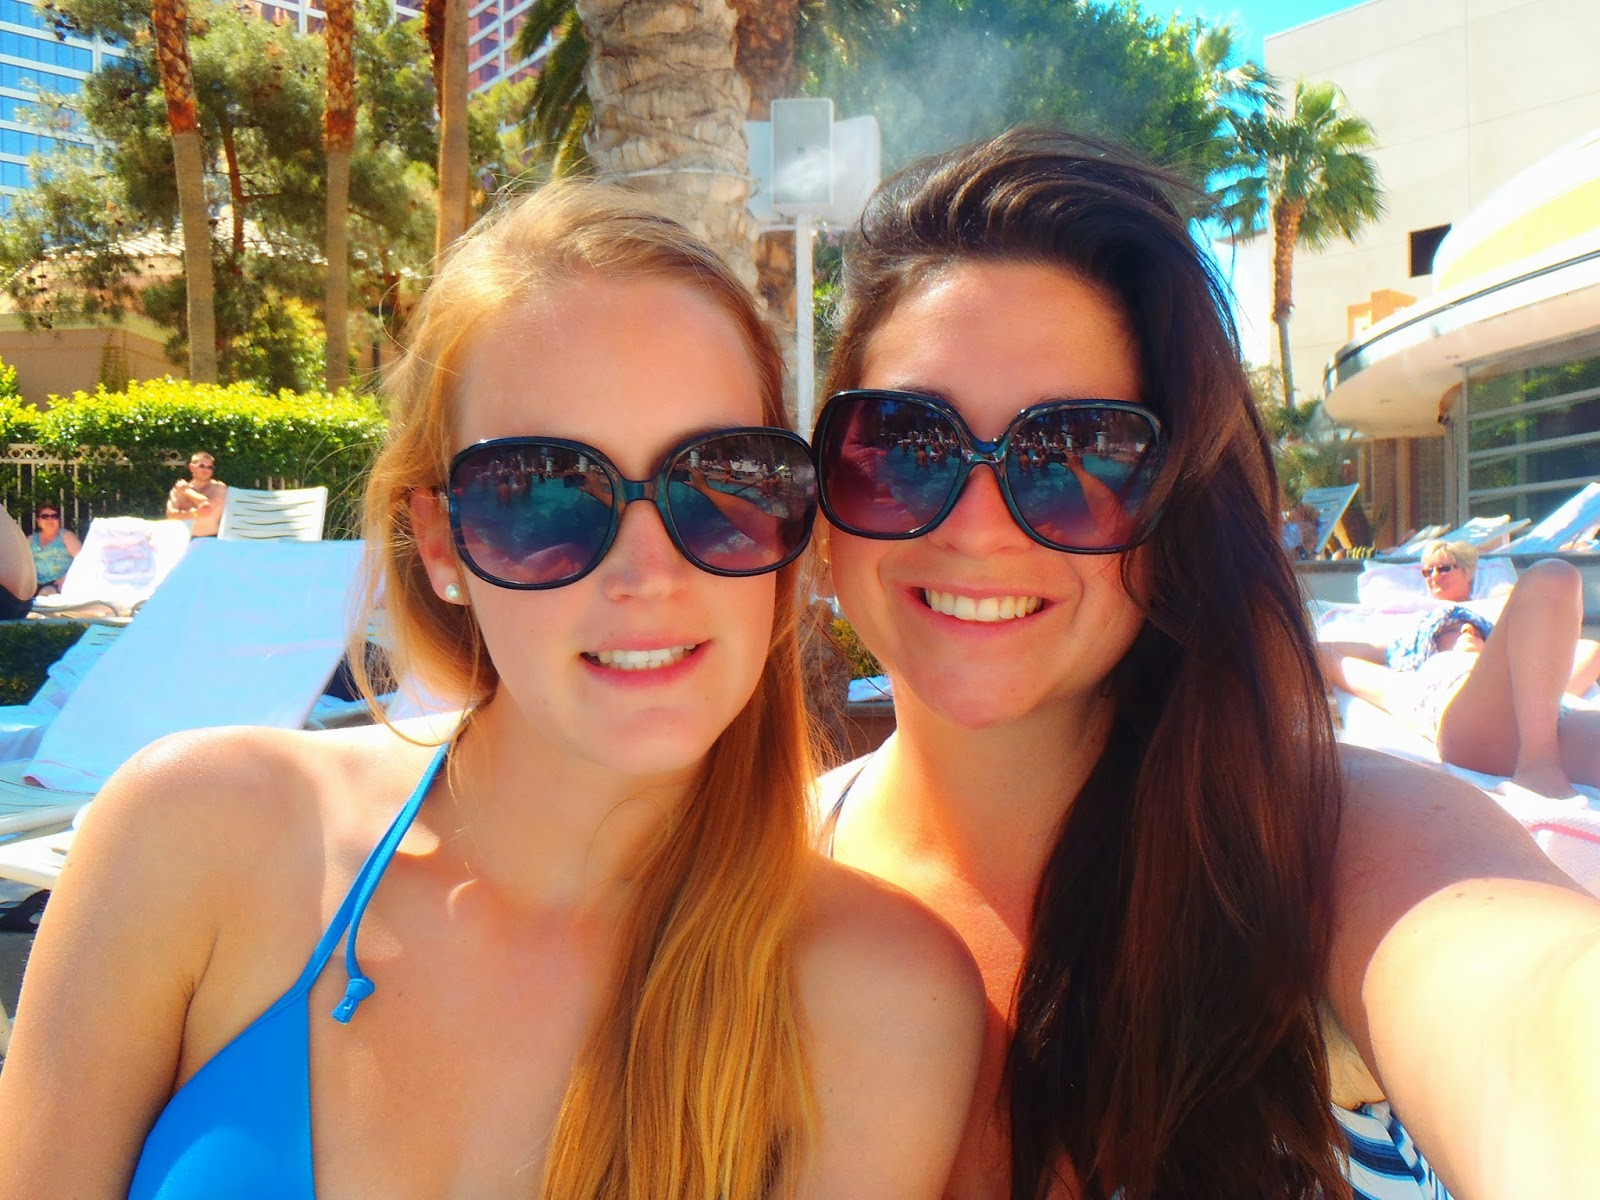 Girls pool selfie at Flamingo Las Vegas